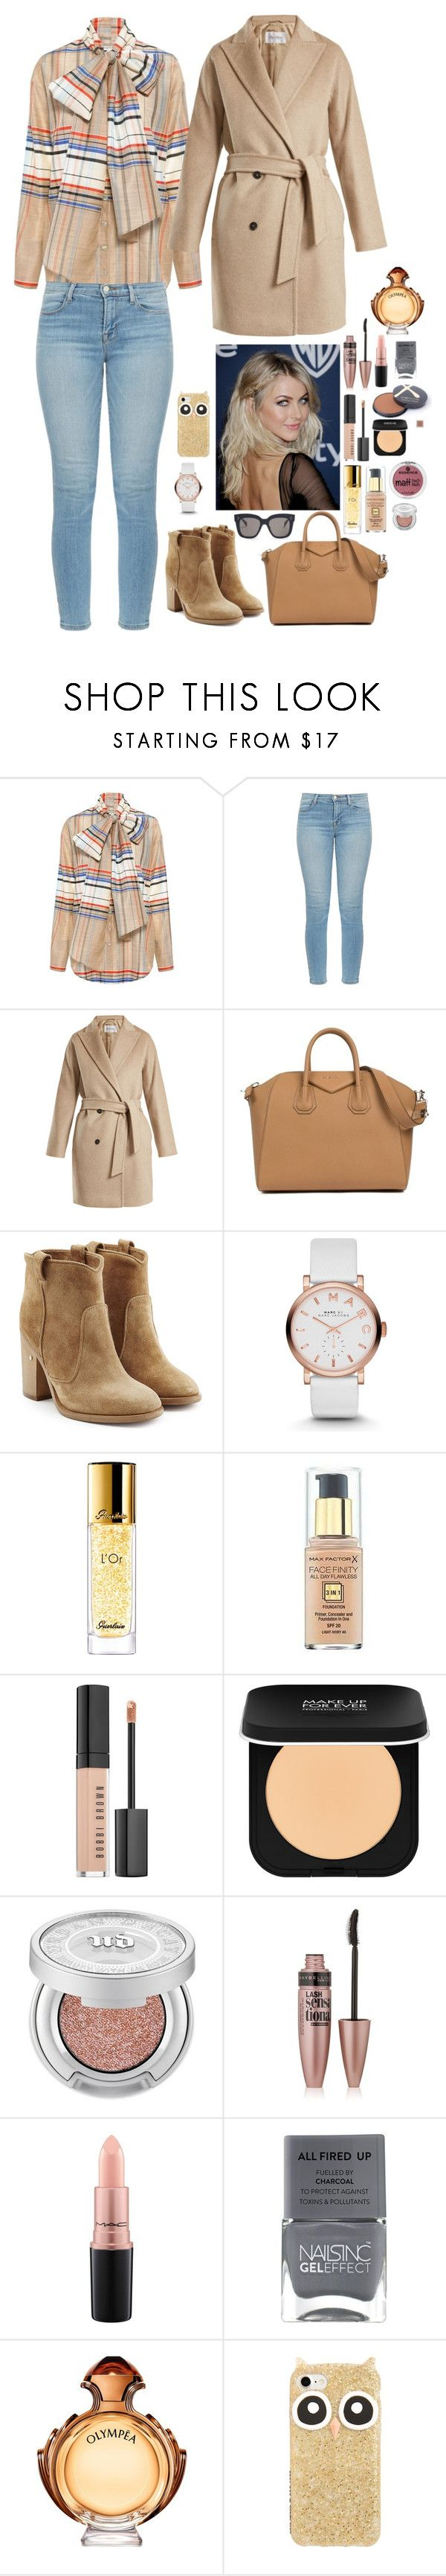 """Untitled #1638"" by azra-99 on Polyvore featuring SUNO New York, J Brand, MaxMara, Givenchy, Laurence Dacade, Marc by Marc Jacobs, Guerlain, Max Factor, Bobbi Brown Cosmetics and MAKE UP FOR EVER"